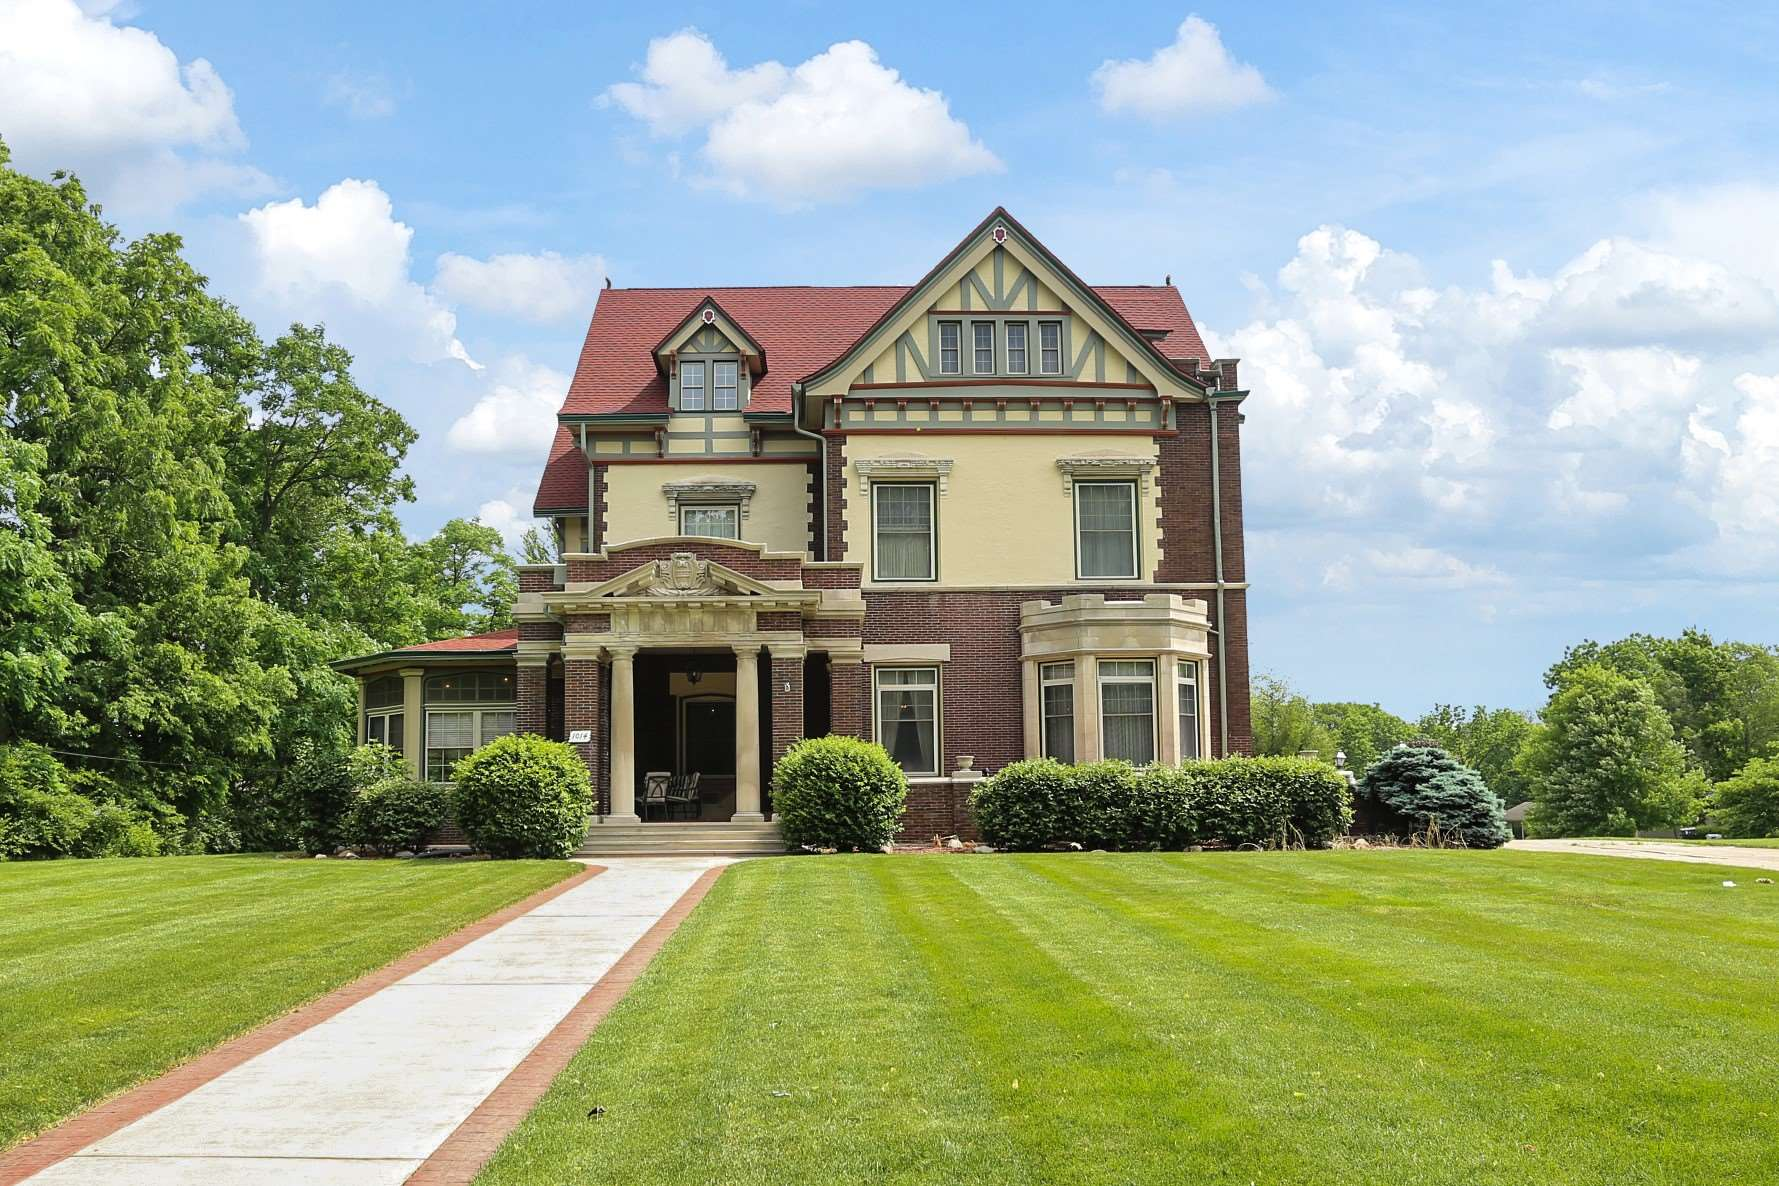 1014 State Street, Lafayette, Indiana 47905, 6 Bedrooms Bedrooms, ,6 BathroomsBathrooms,Single Family,For Sale,1014 State Street,202022324